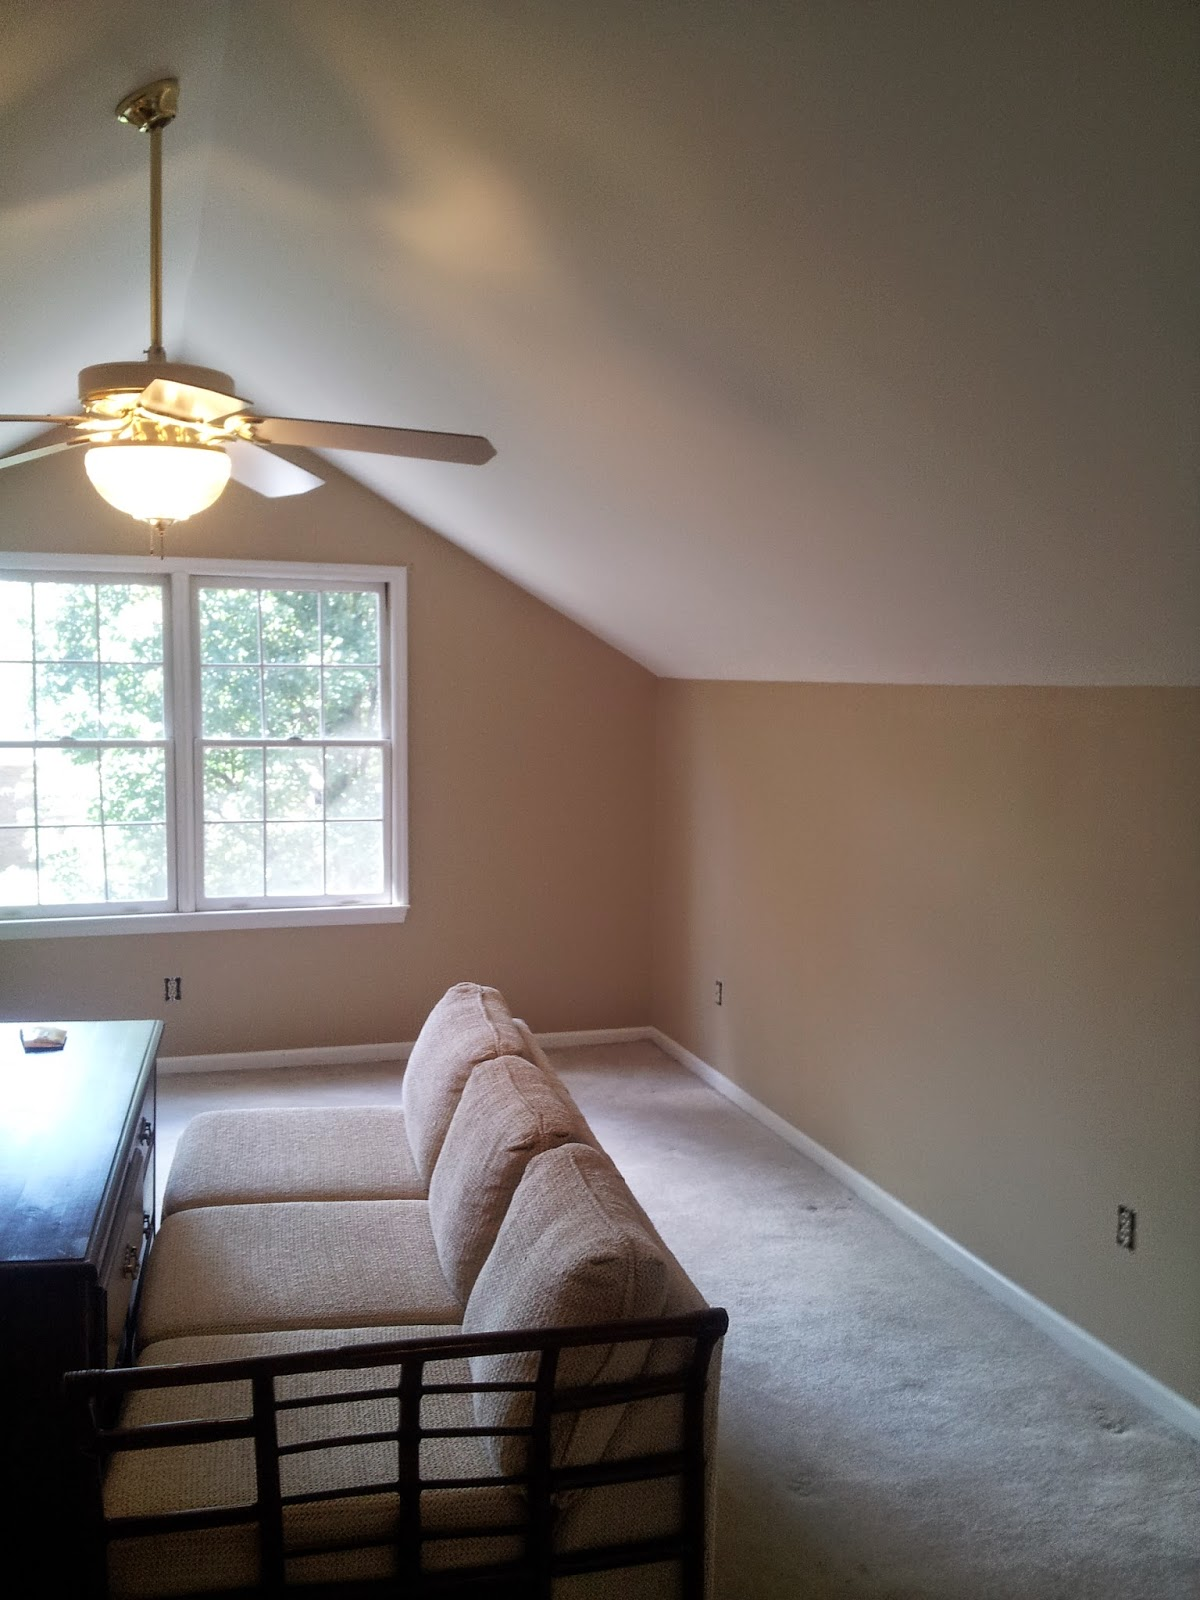 Spartanburg, house painters, interior painters, Spartanburg painters